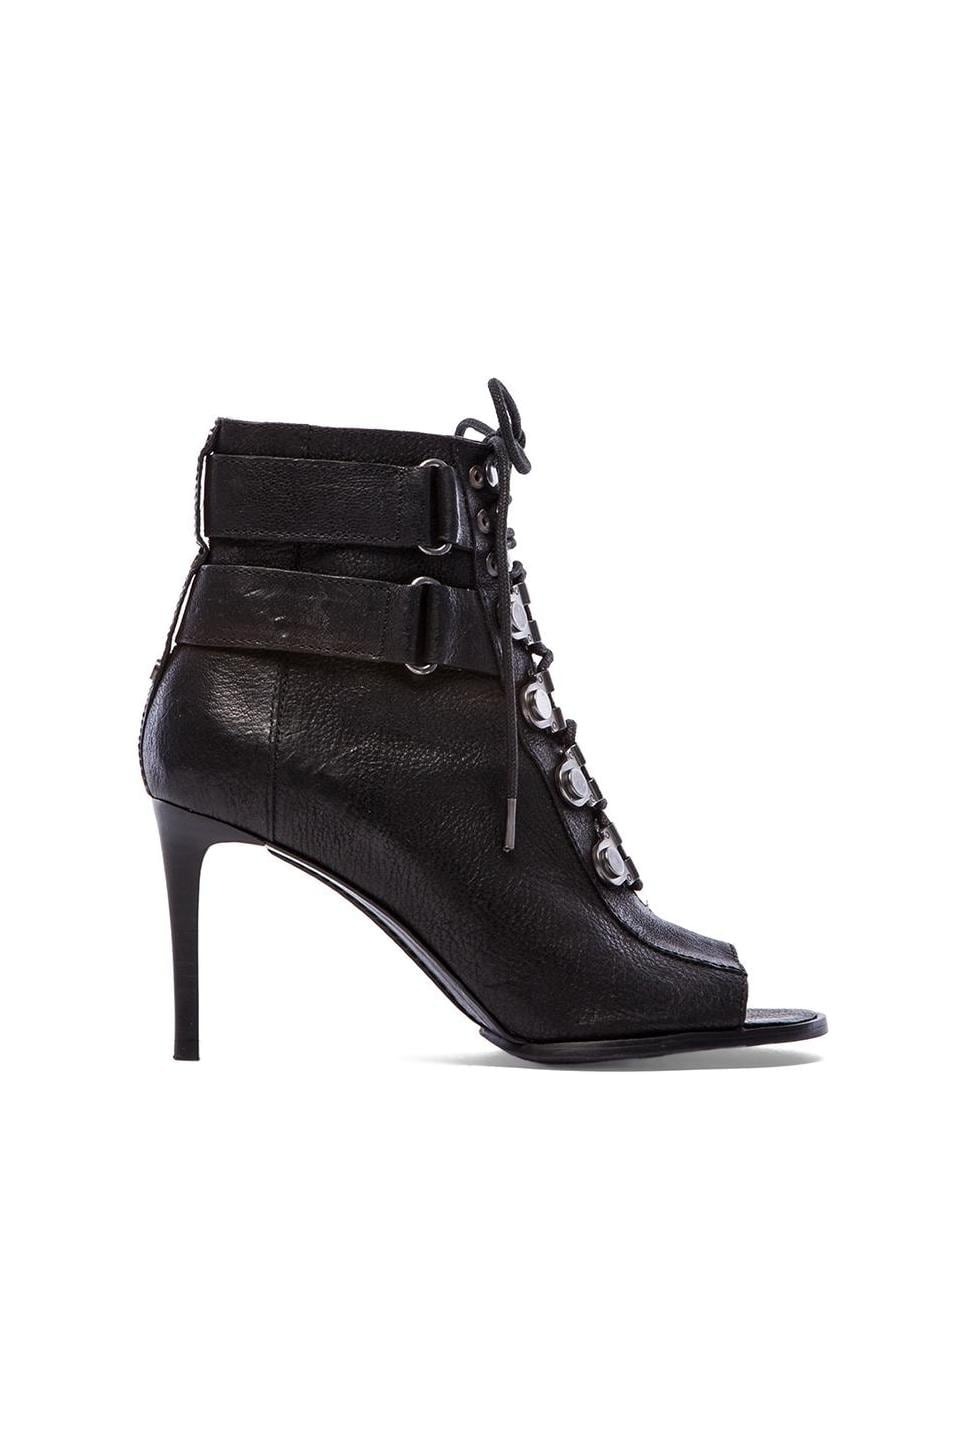 Luxury Rebel Cara Lace Up Open Toe Booties in Black